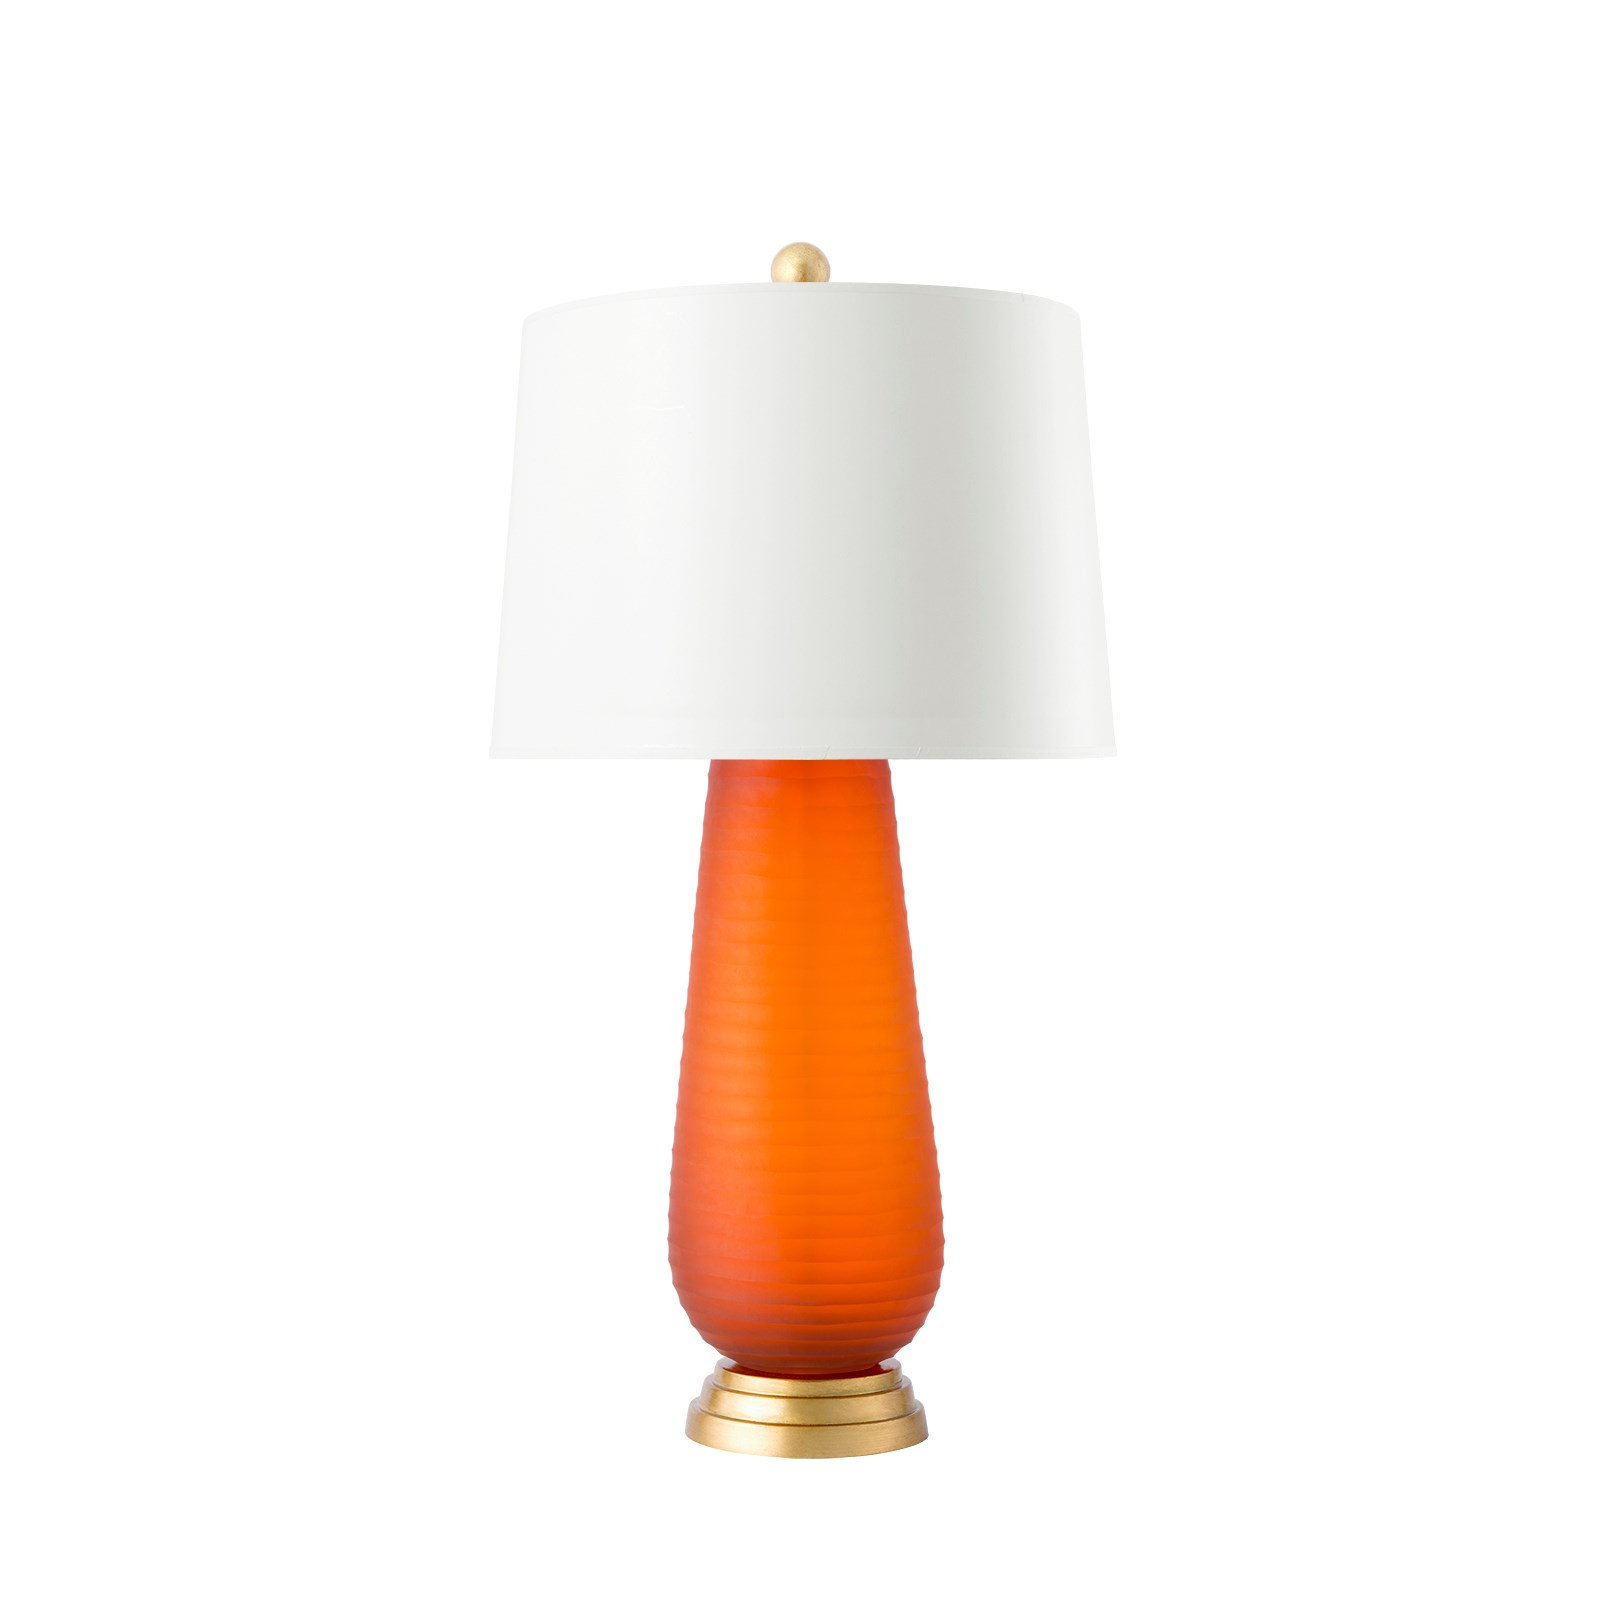 Zelina Lamp, (Lamp Only), Orange